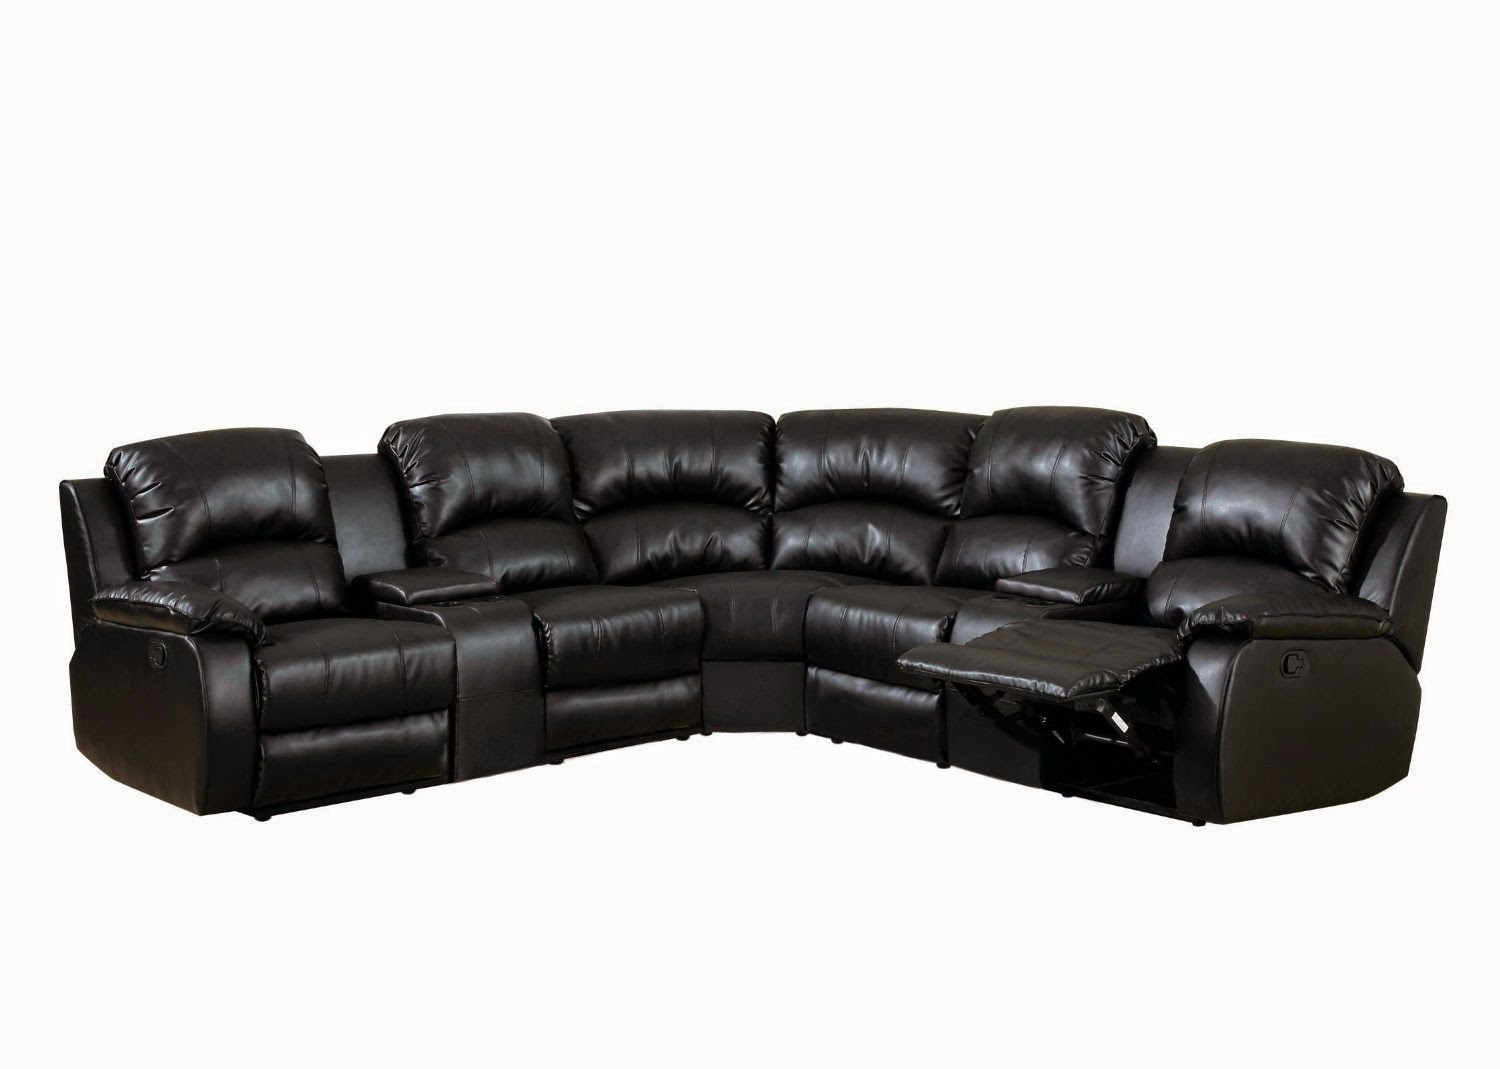 curved sofa set india royal furniture in dubai best recliner brand recommendation wanted